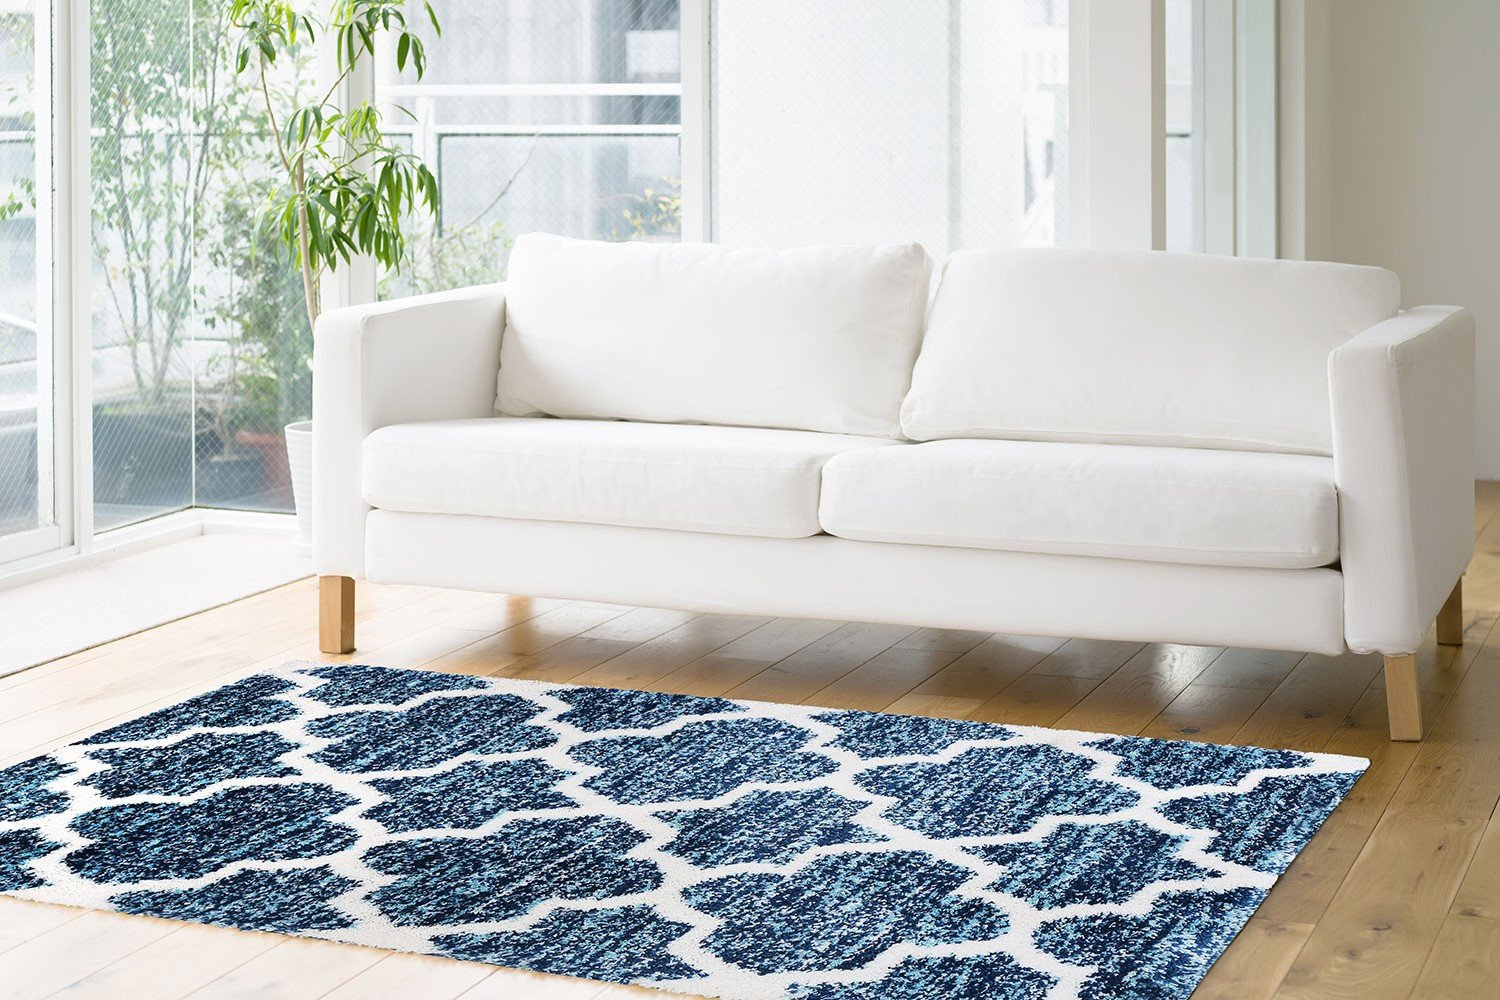 Rug for Living Room Ideas Fresh Small Living Room Ideas On A Bud